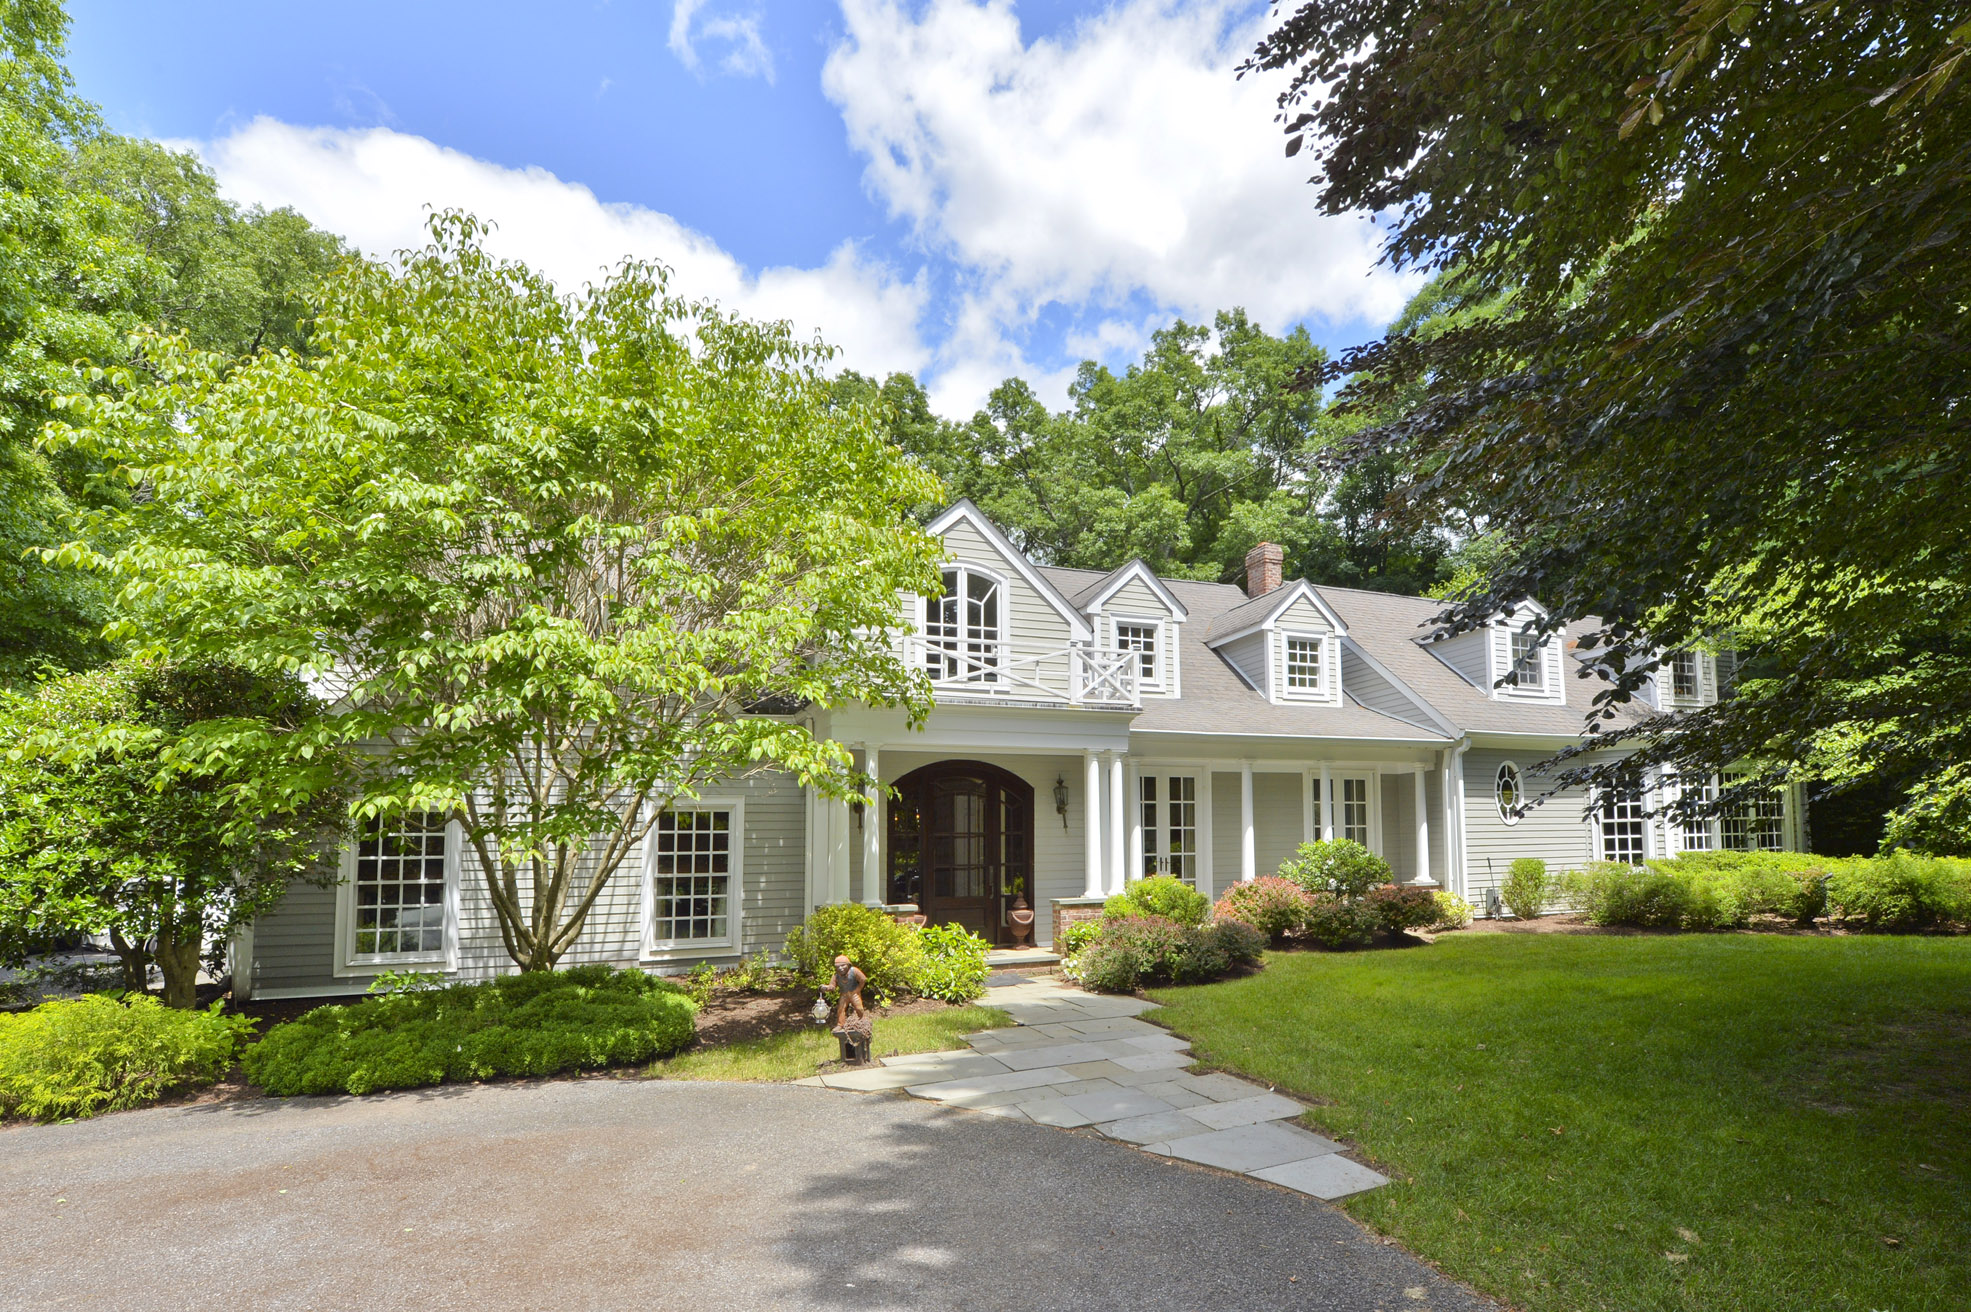 41 Locust Lane, Saddle River, NJ 07458